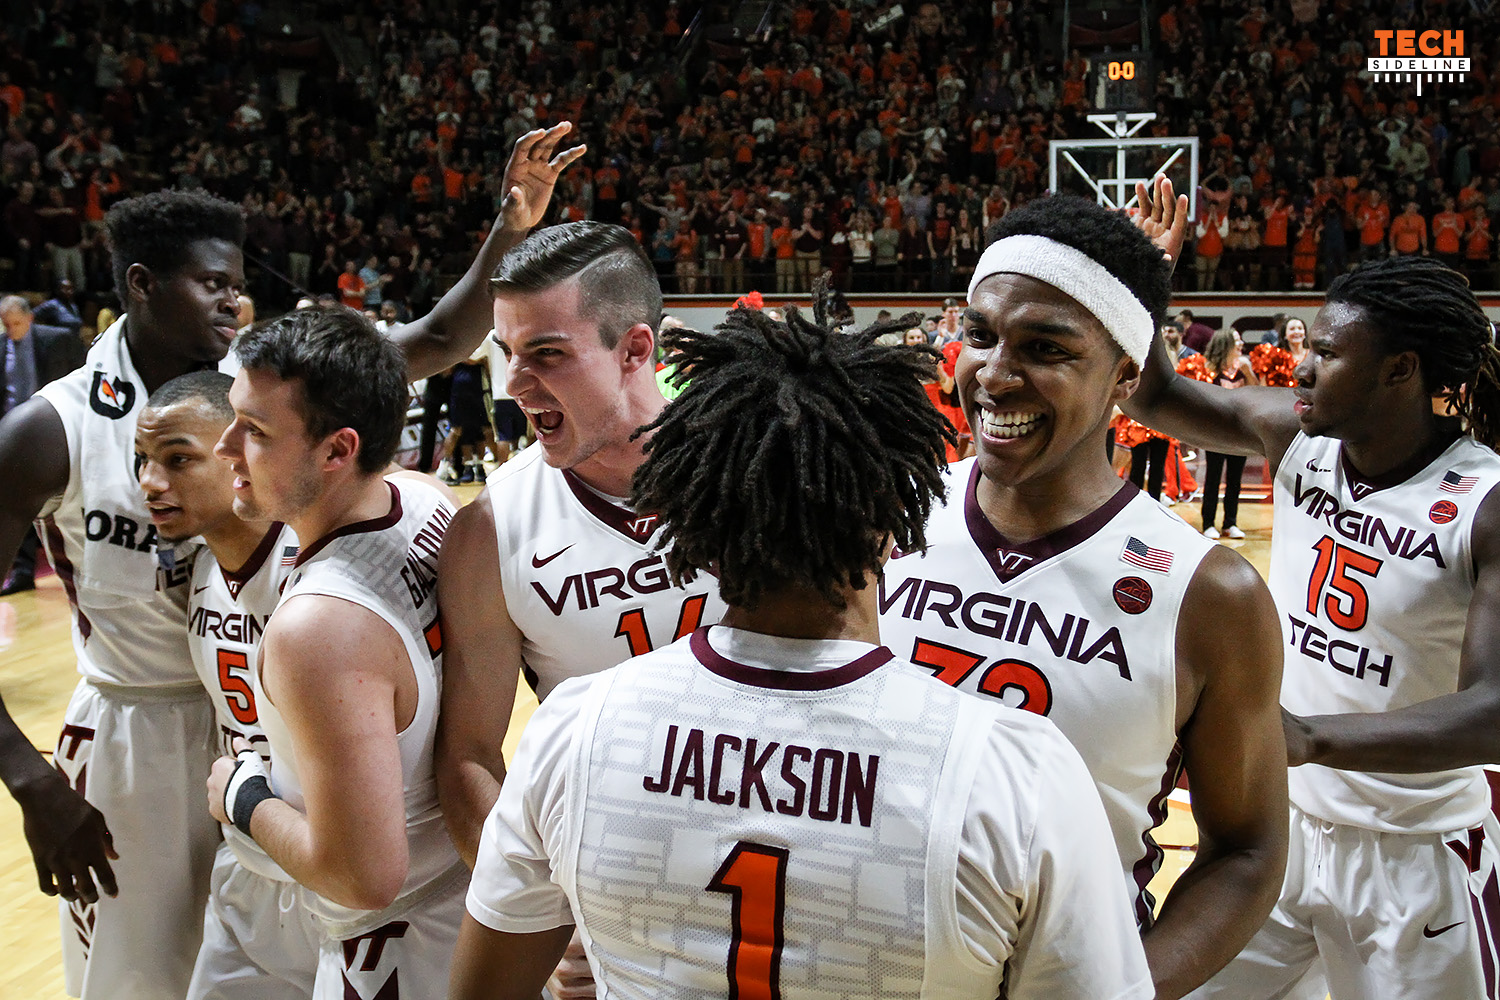 2017.01.18. Basketball. Men. Georgia Tech (GT, Yellow Jackets) at Virginia Tech (Hokies). Cassell Coliseum, Virginia Tech, Blacksburg, VA. Final score: Virginia Tech 62, Ga Tech 61. Officials: Mike Eades, Bill Covington Jr, Raymond Styons Jr. Attendance: 6,598.